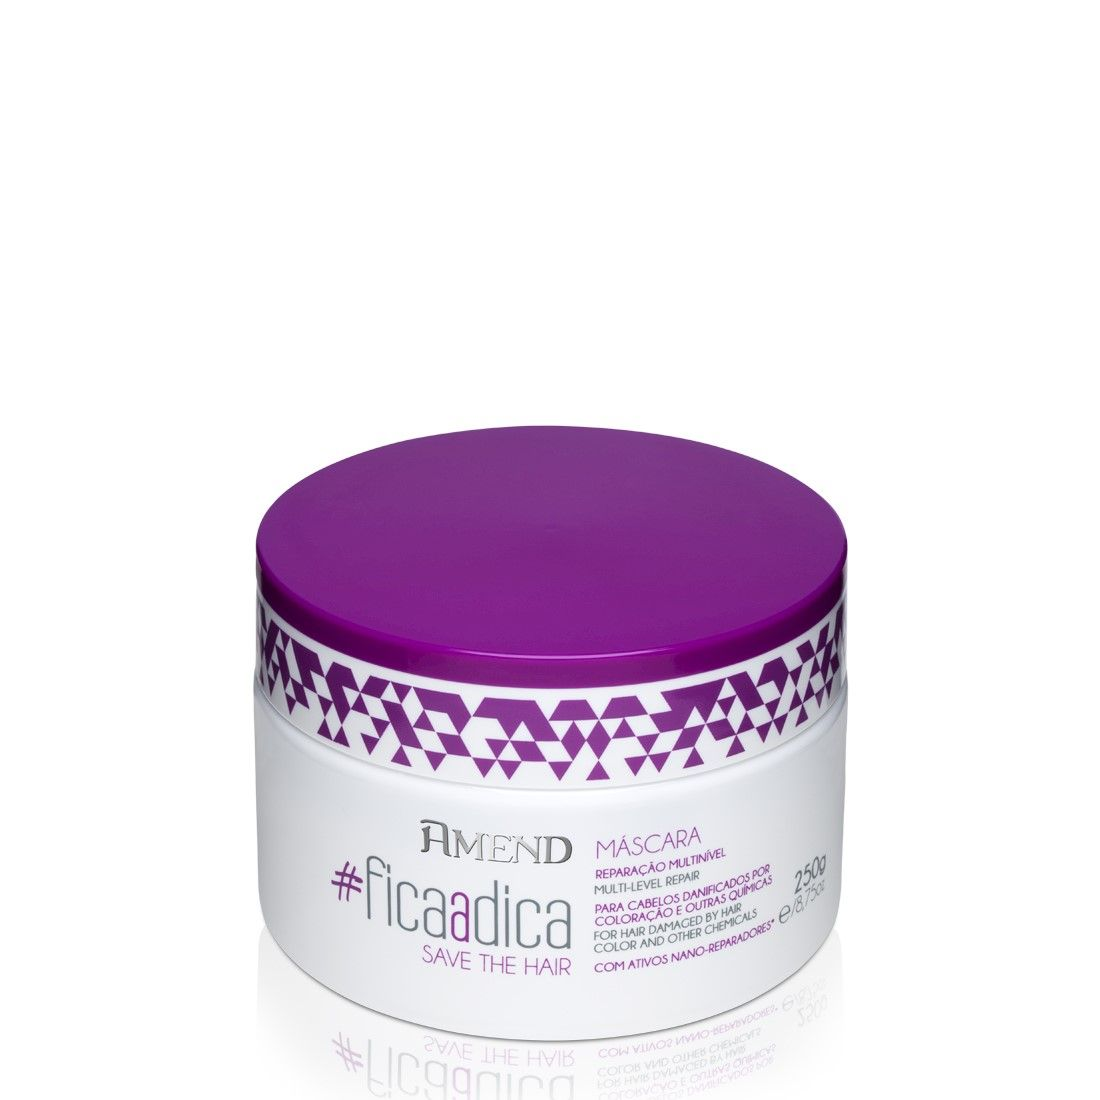 Amend #Ficaadica Save The Hair Máscara 250g